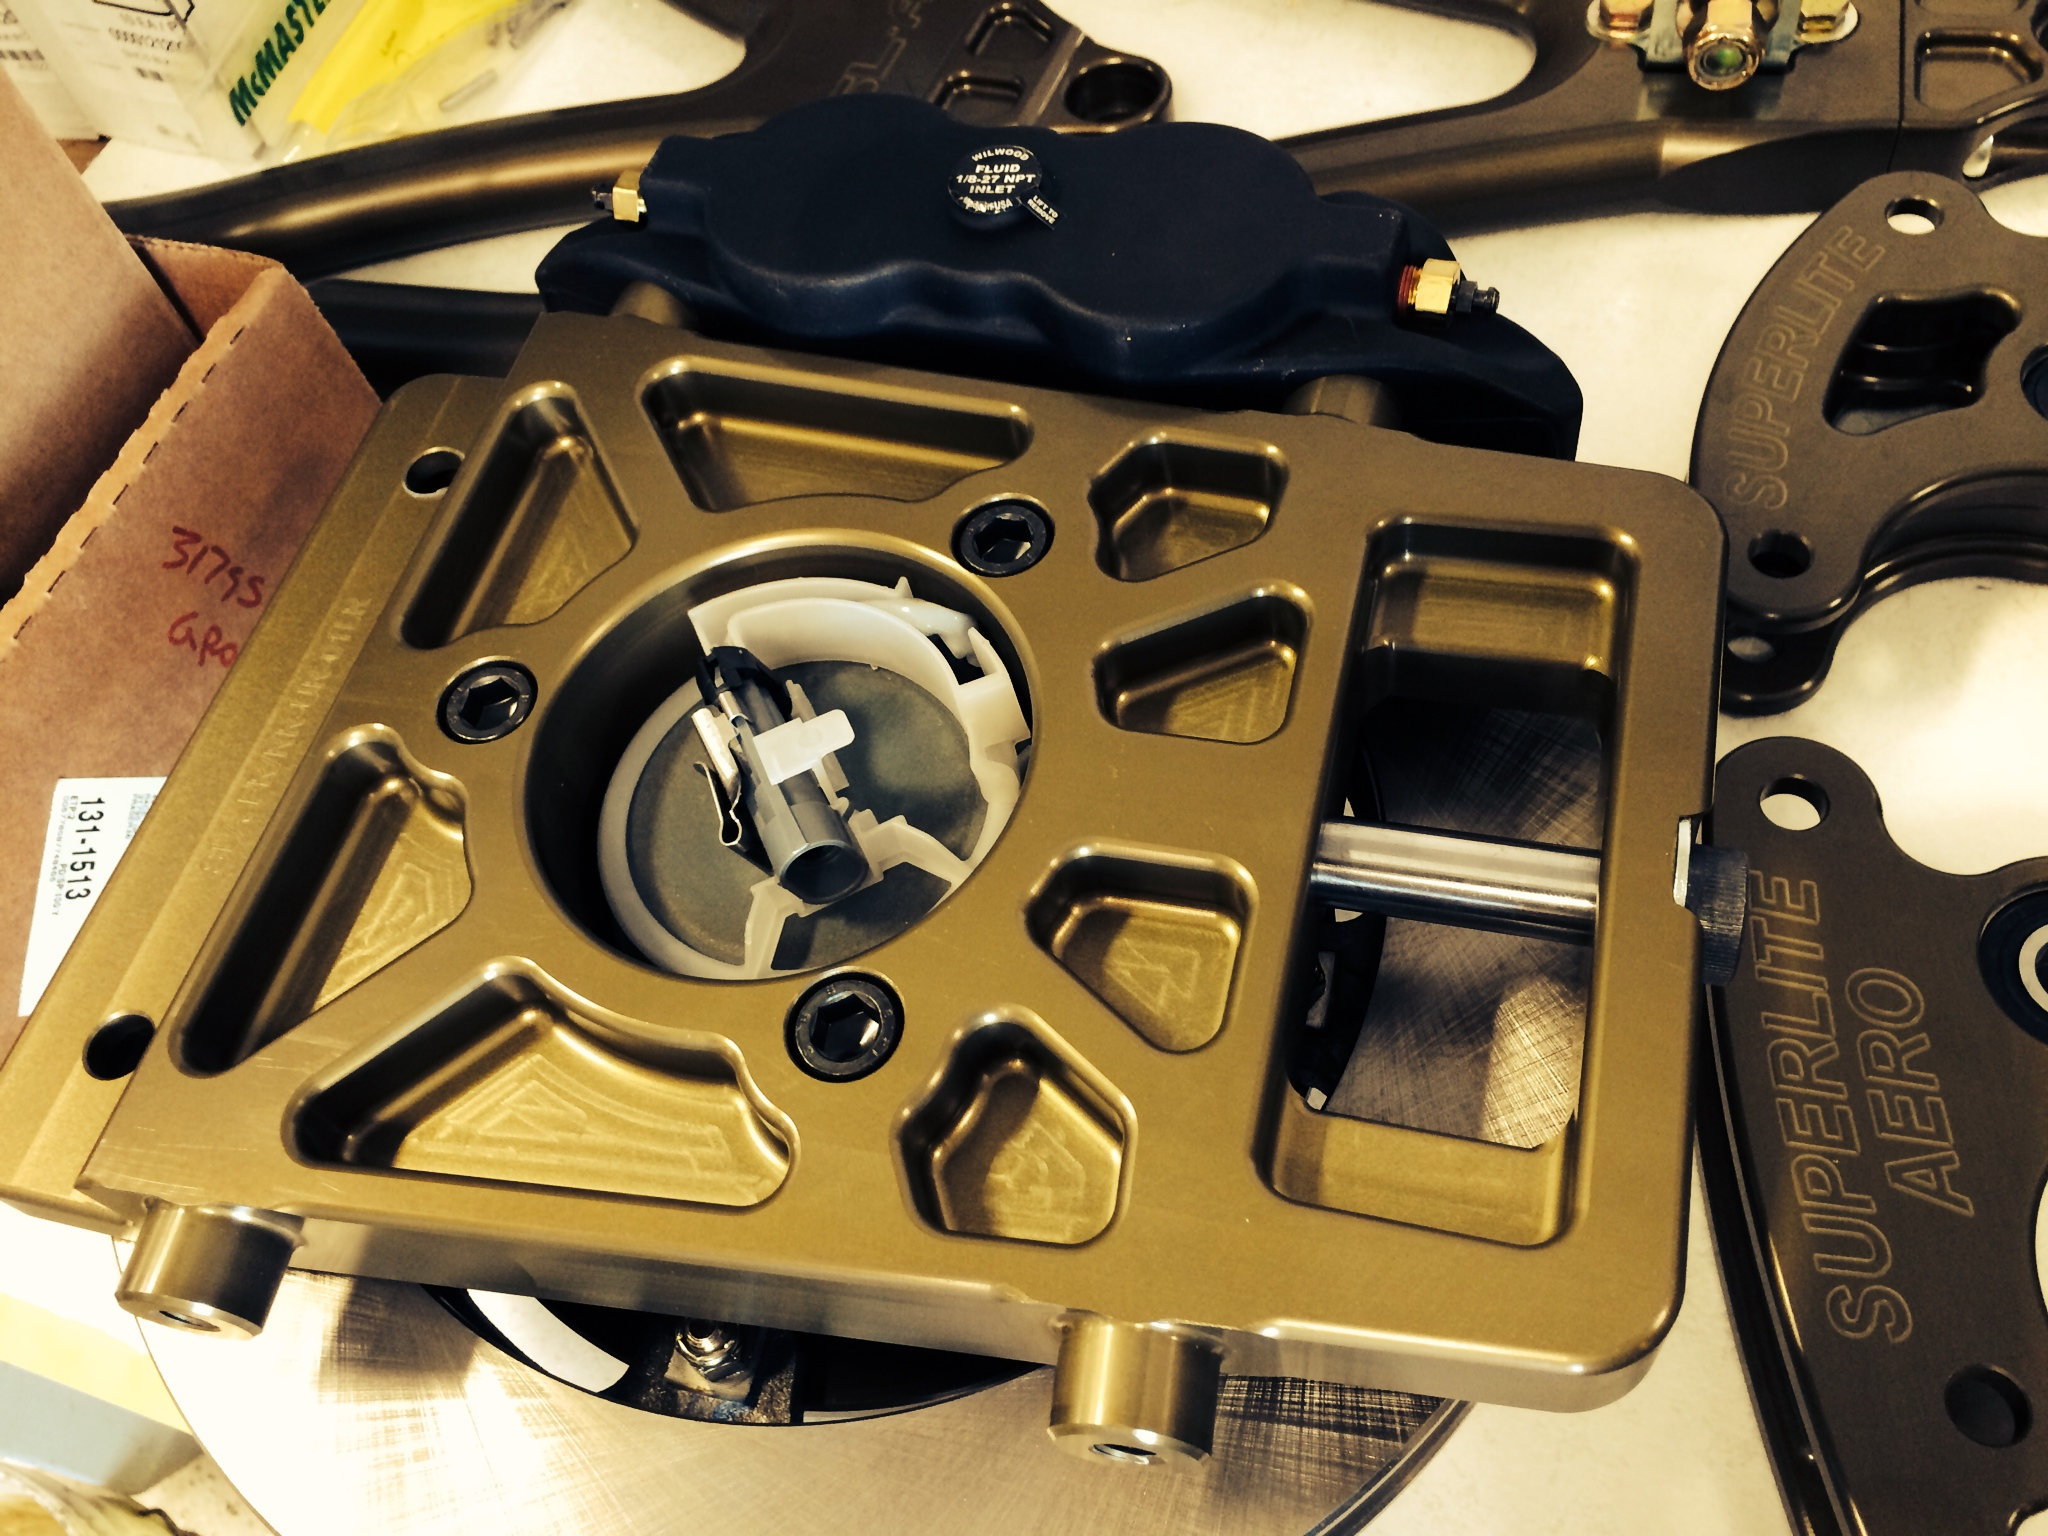 All 4 corners of the Superlite Aero share the same upright, made of billet aluminum